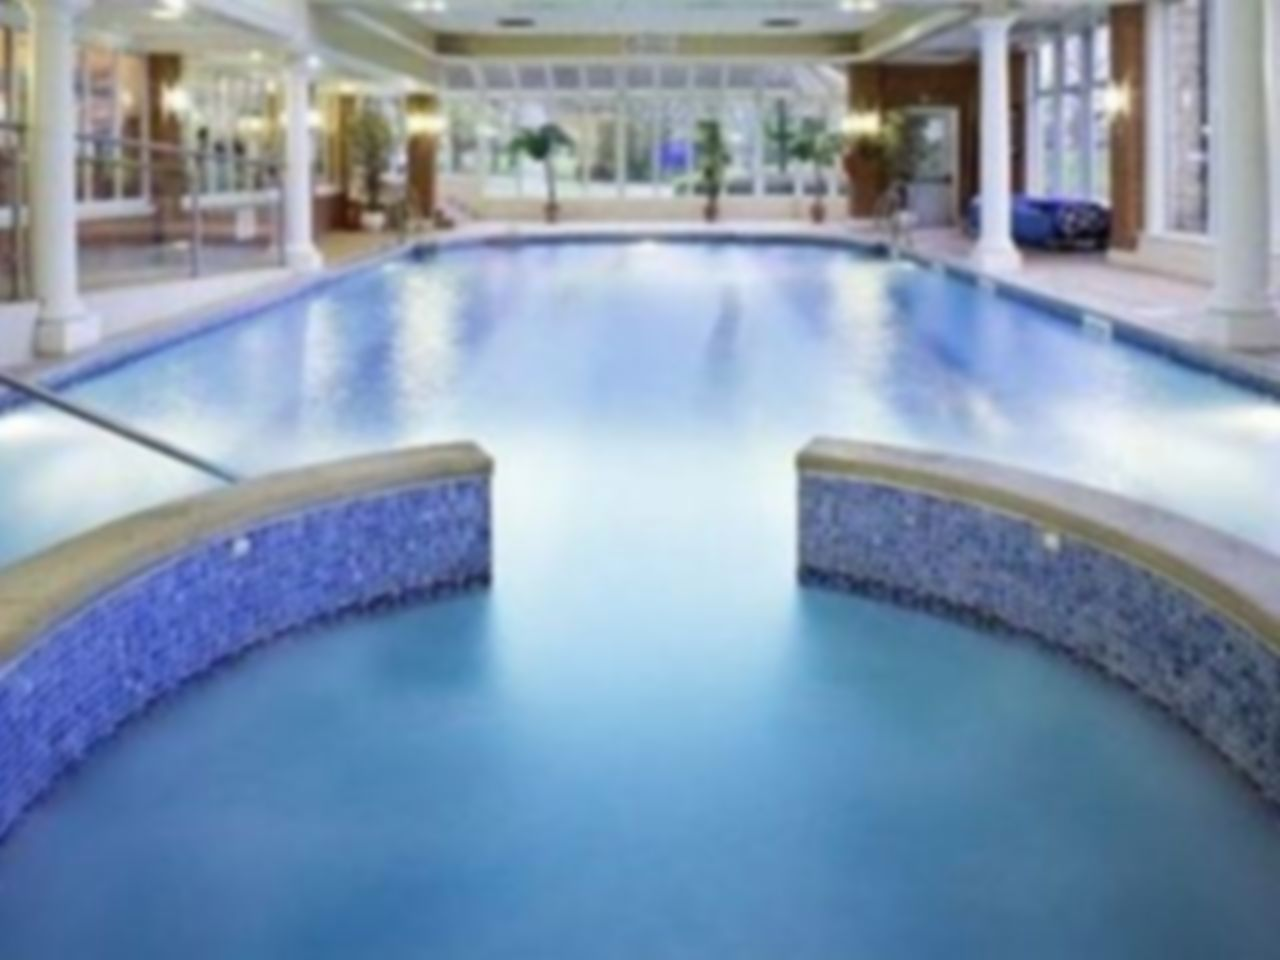 Spa naturel fitness blackburn flexible gym passes bb5 - Blackburn swimming pool opening times ...